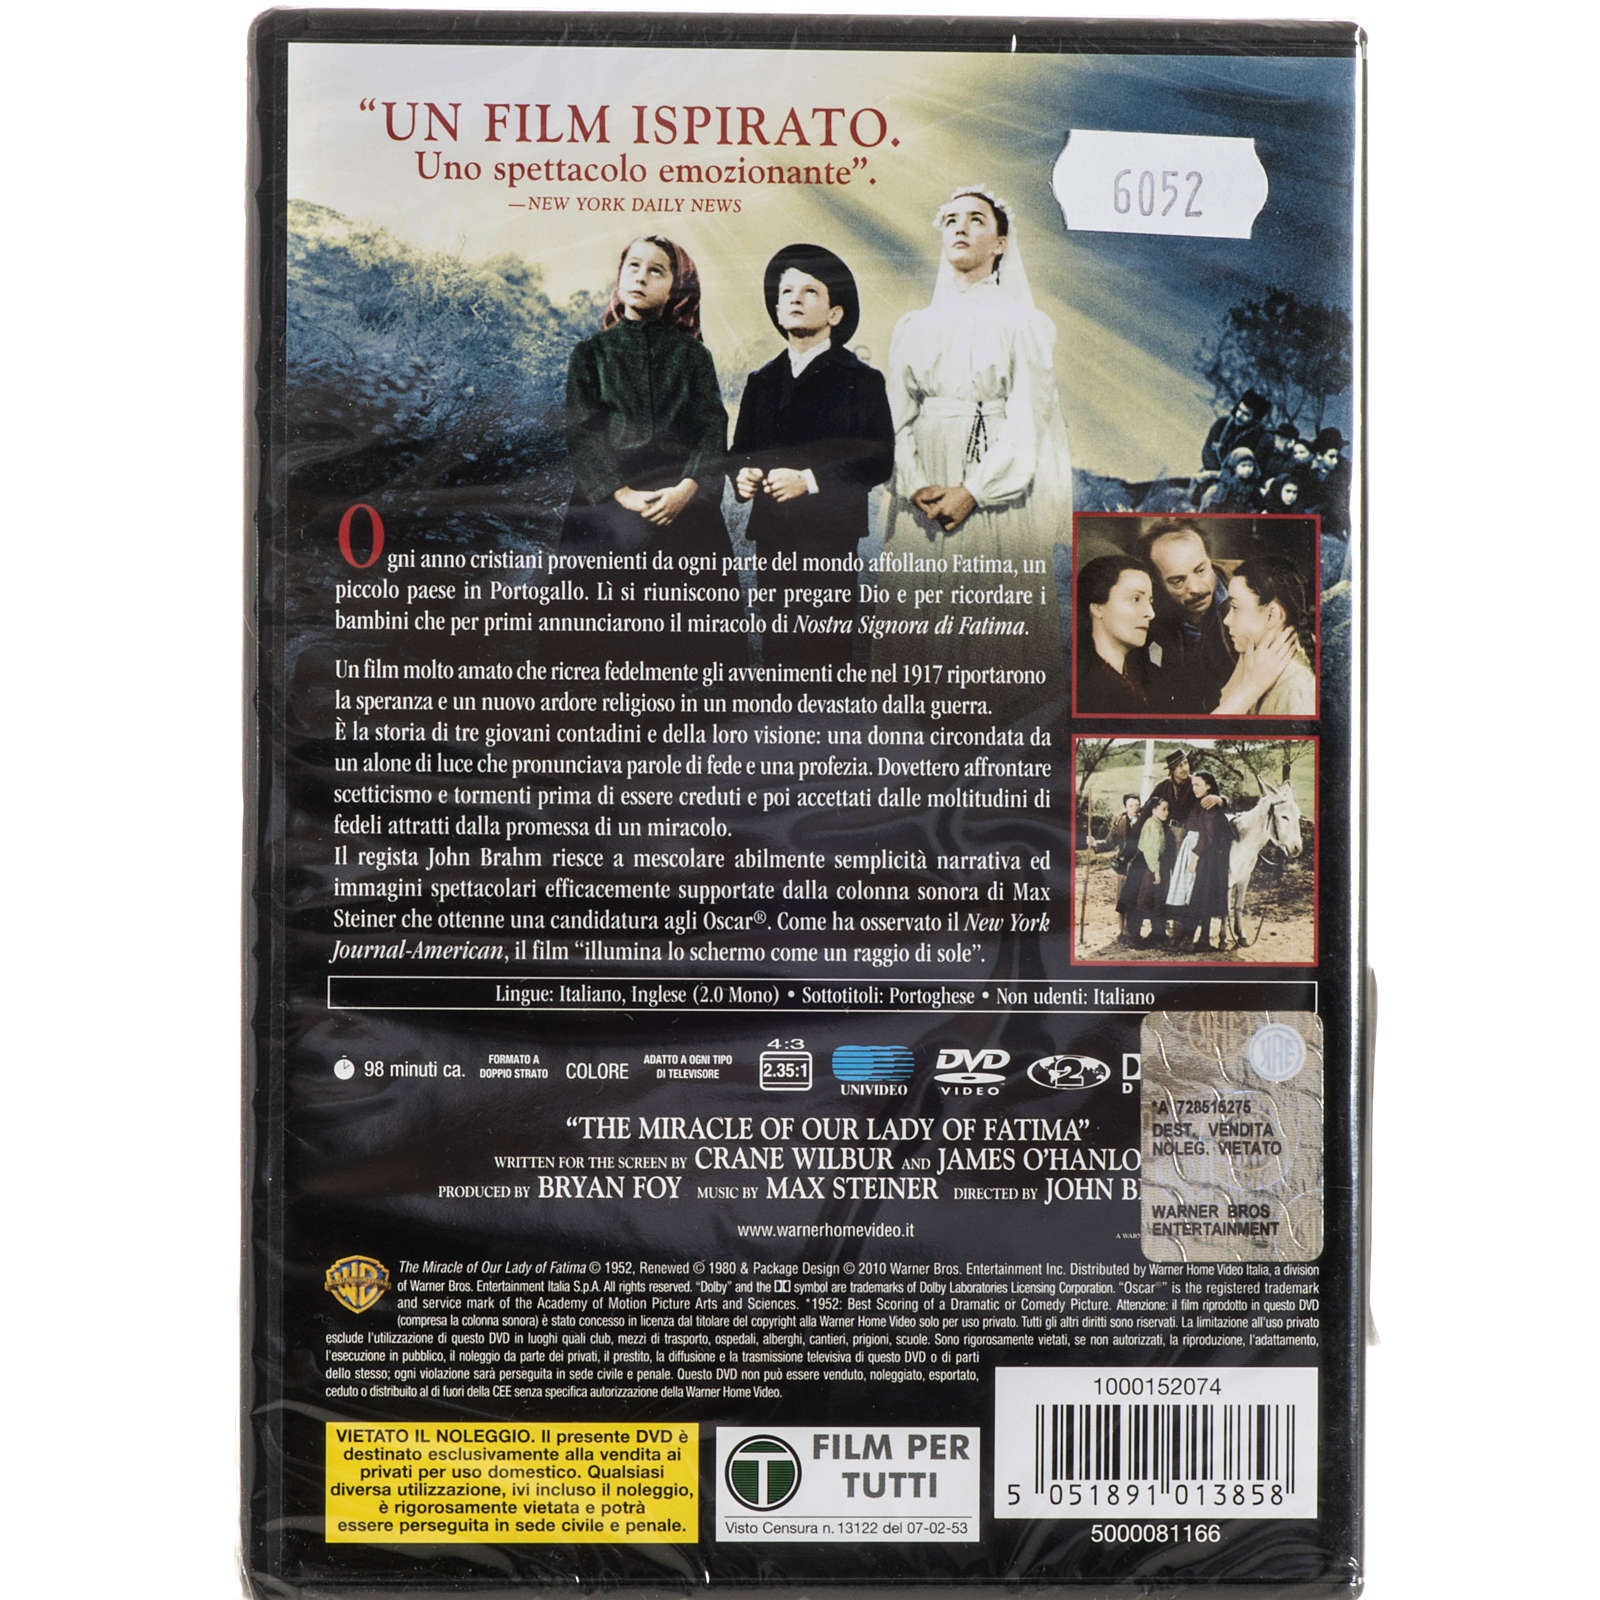 Our Lady of Fatima DVD 3